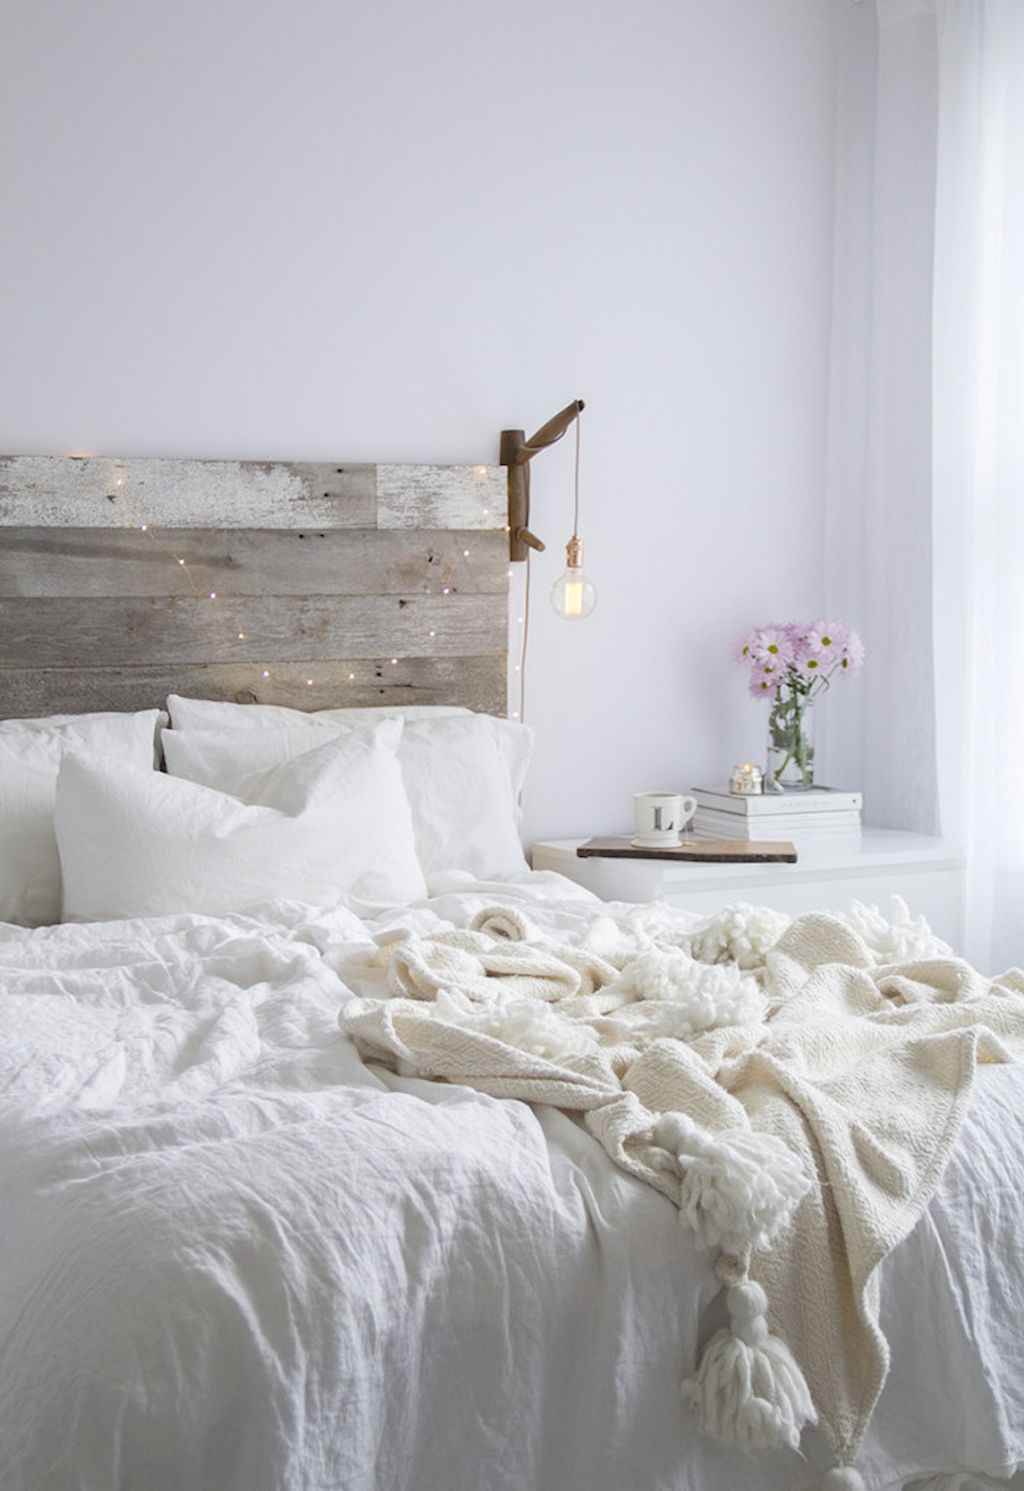 Couples first apartment decorating ideas (17)